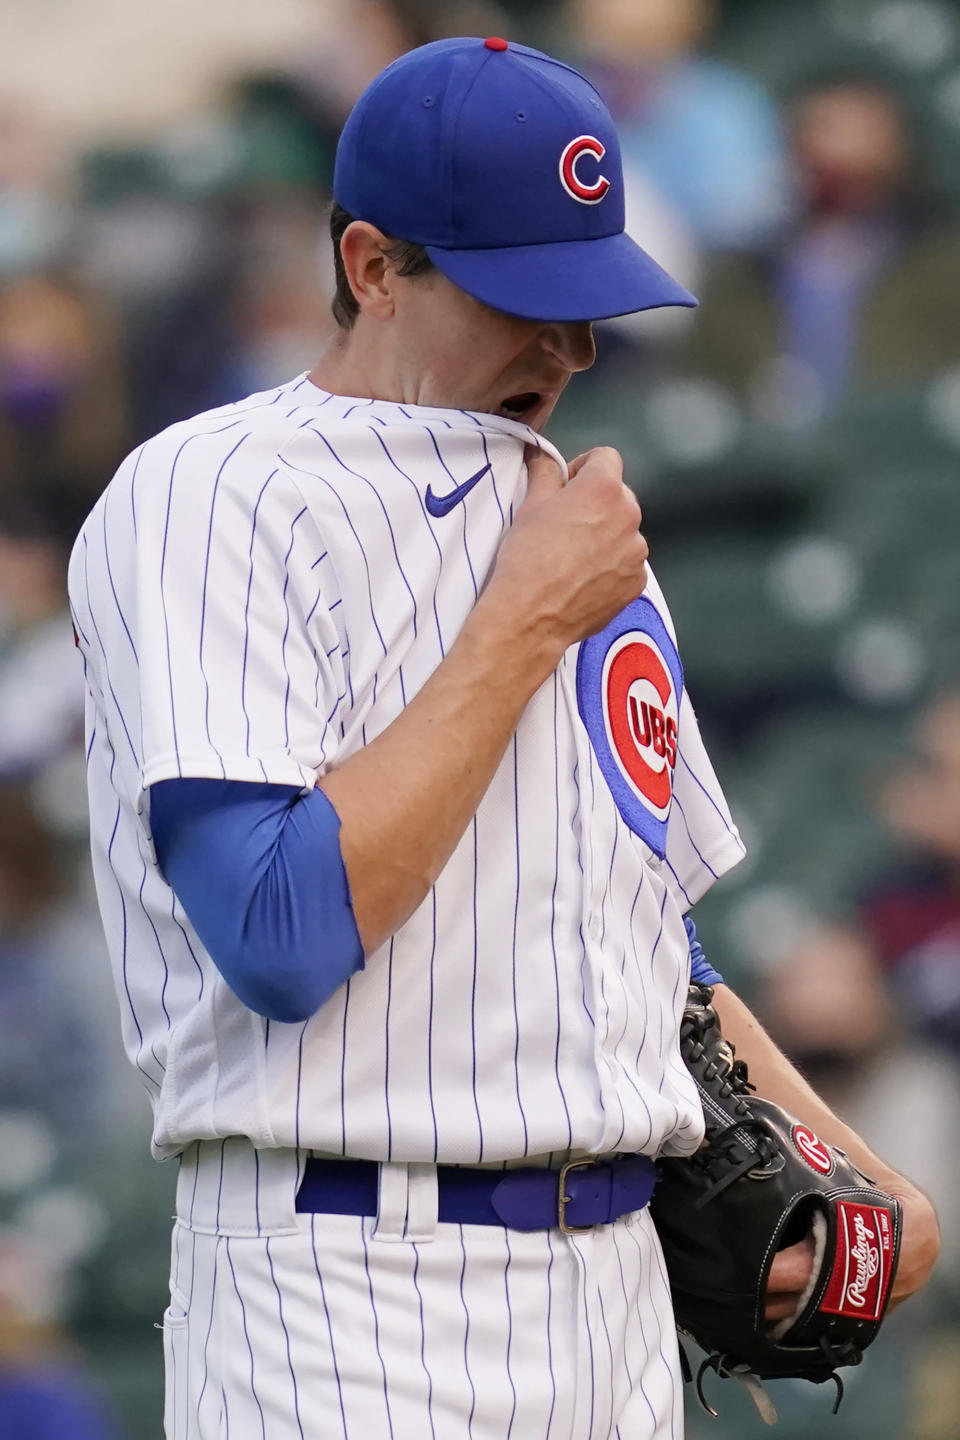 Chicago Cubs starting pitcher Kyle Hendricks wipes his face after Atlanta Braves' Ehire Adrianza hit a solo home run during the first inning of a baseball game in Chicago, Sunday, April 18, 2021. (AP Photo/Nam Y. Huh)